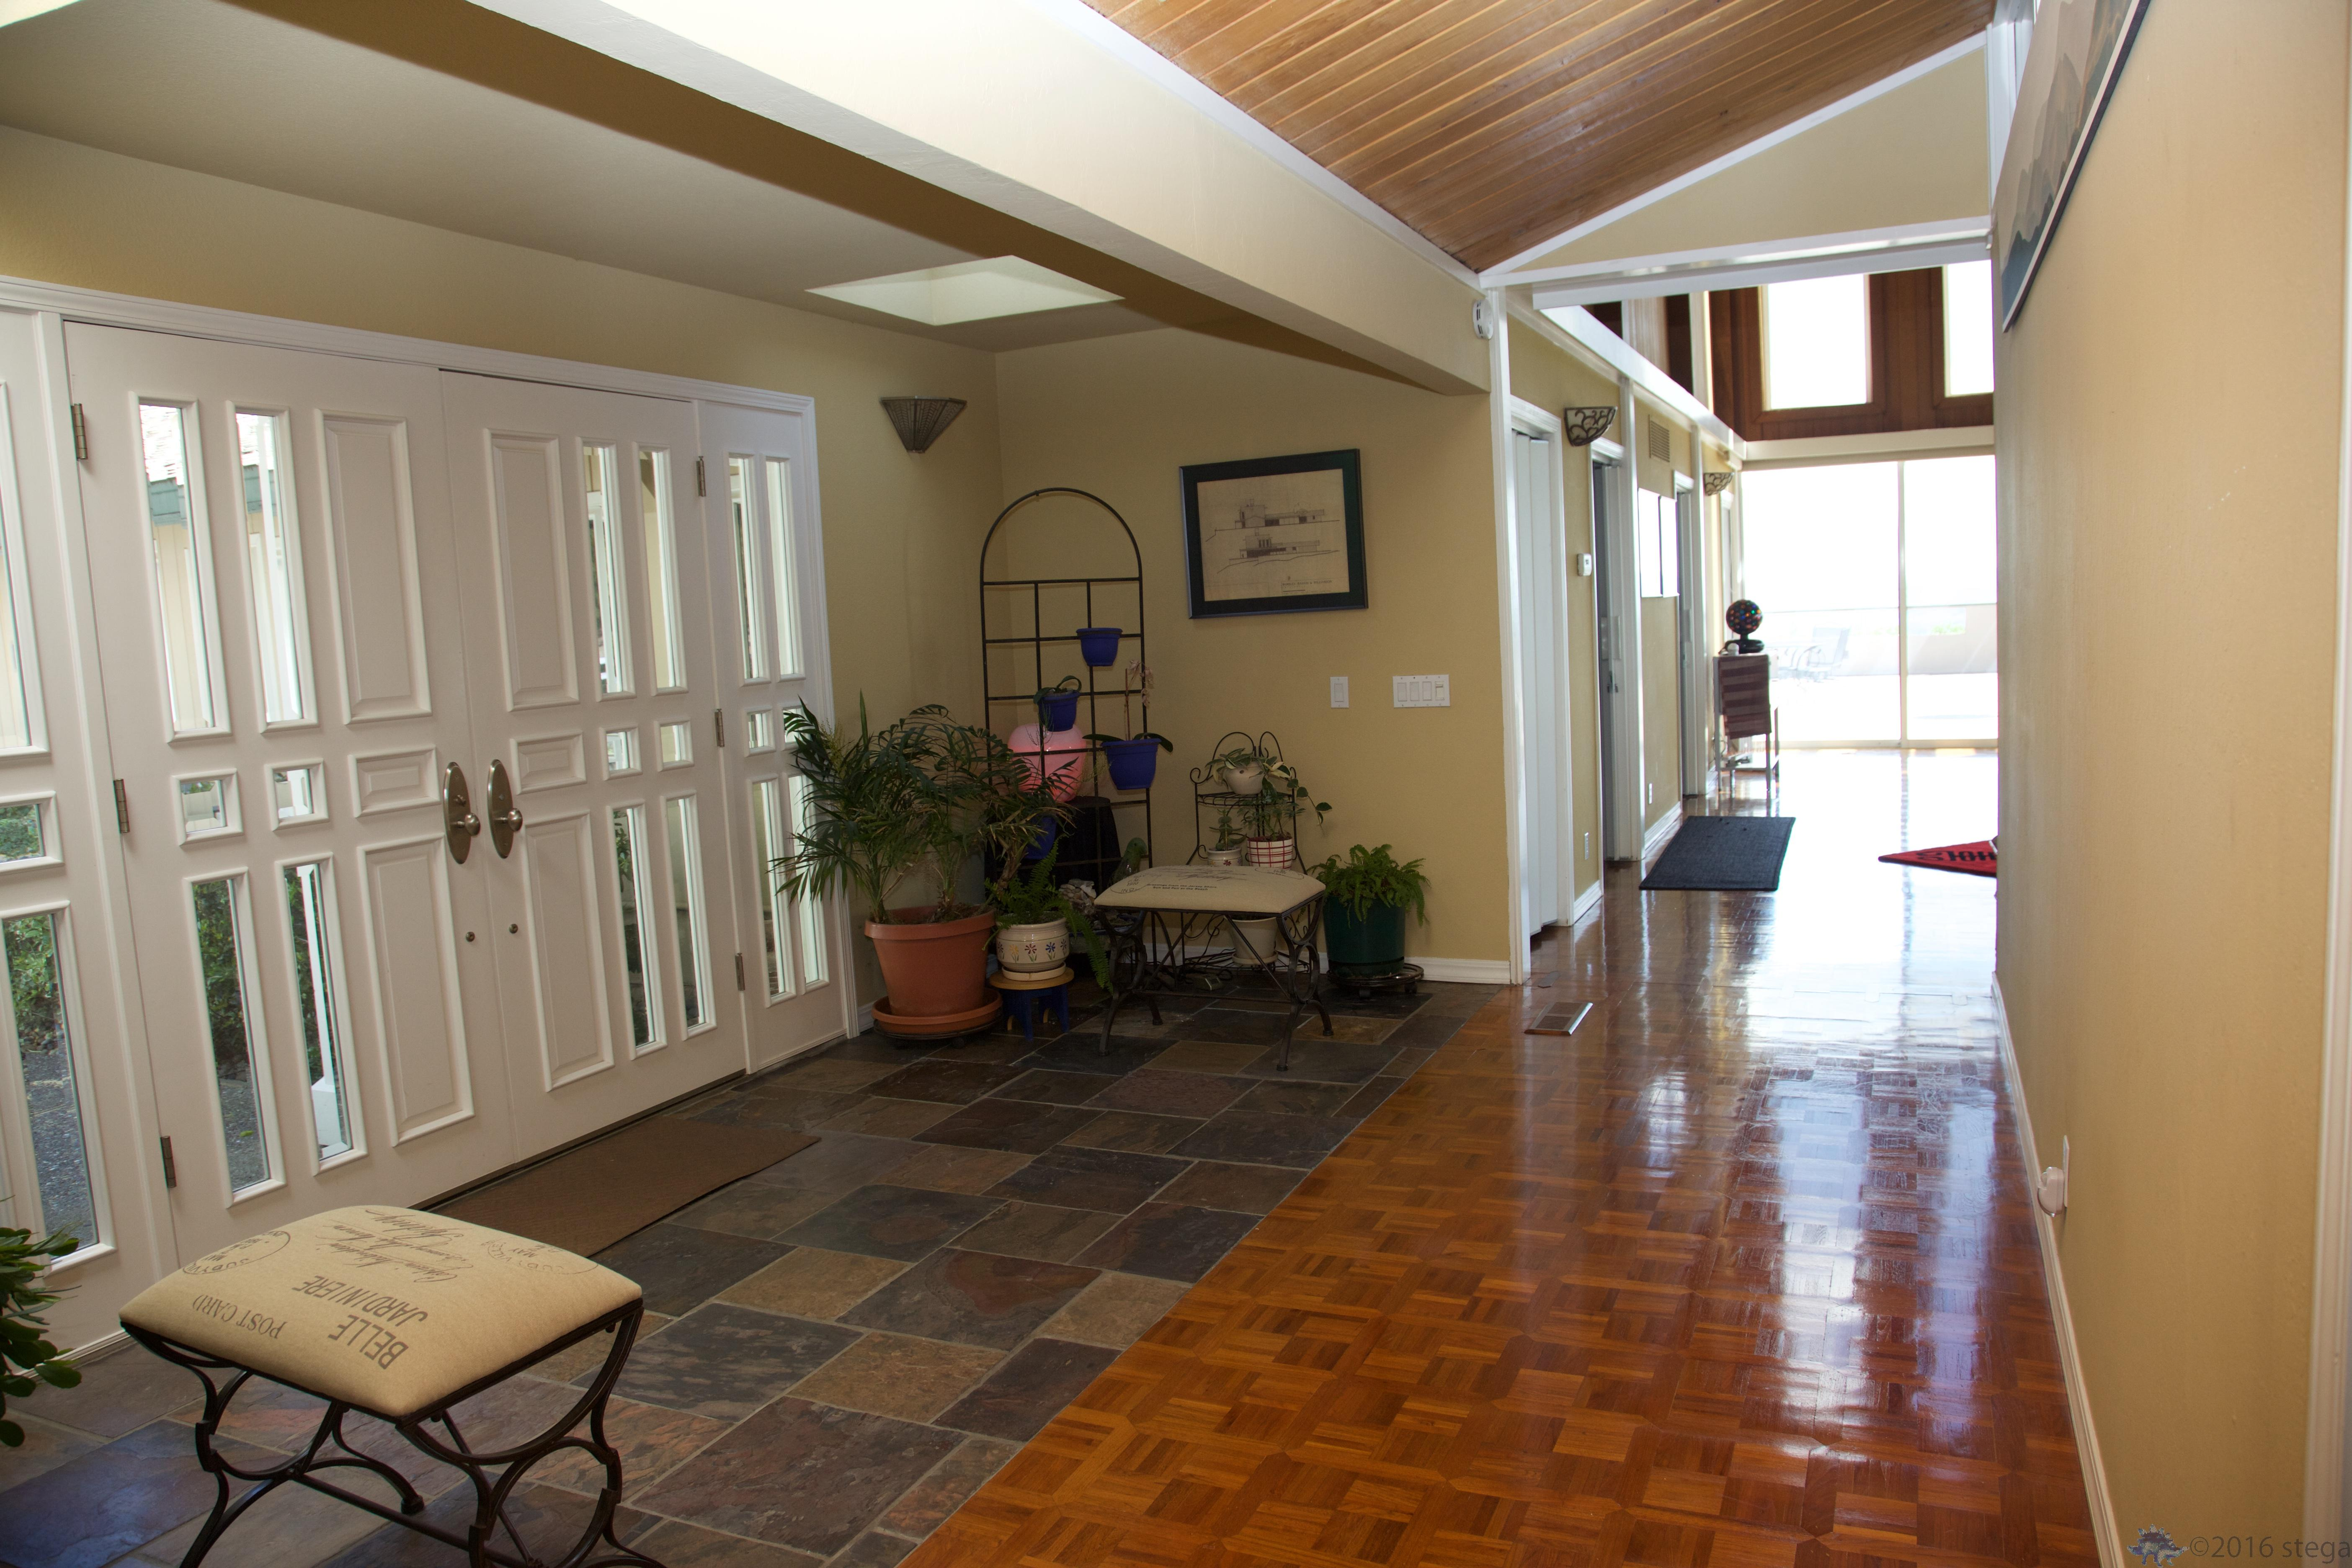 Revisiting First Impressions Part 5 Foyer And Master Bedroom